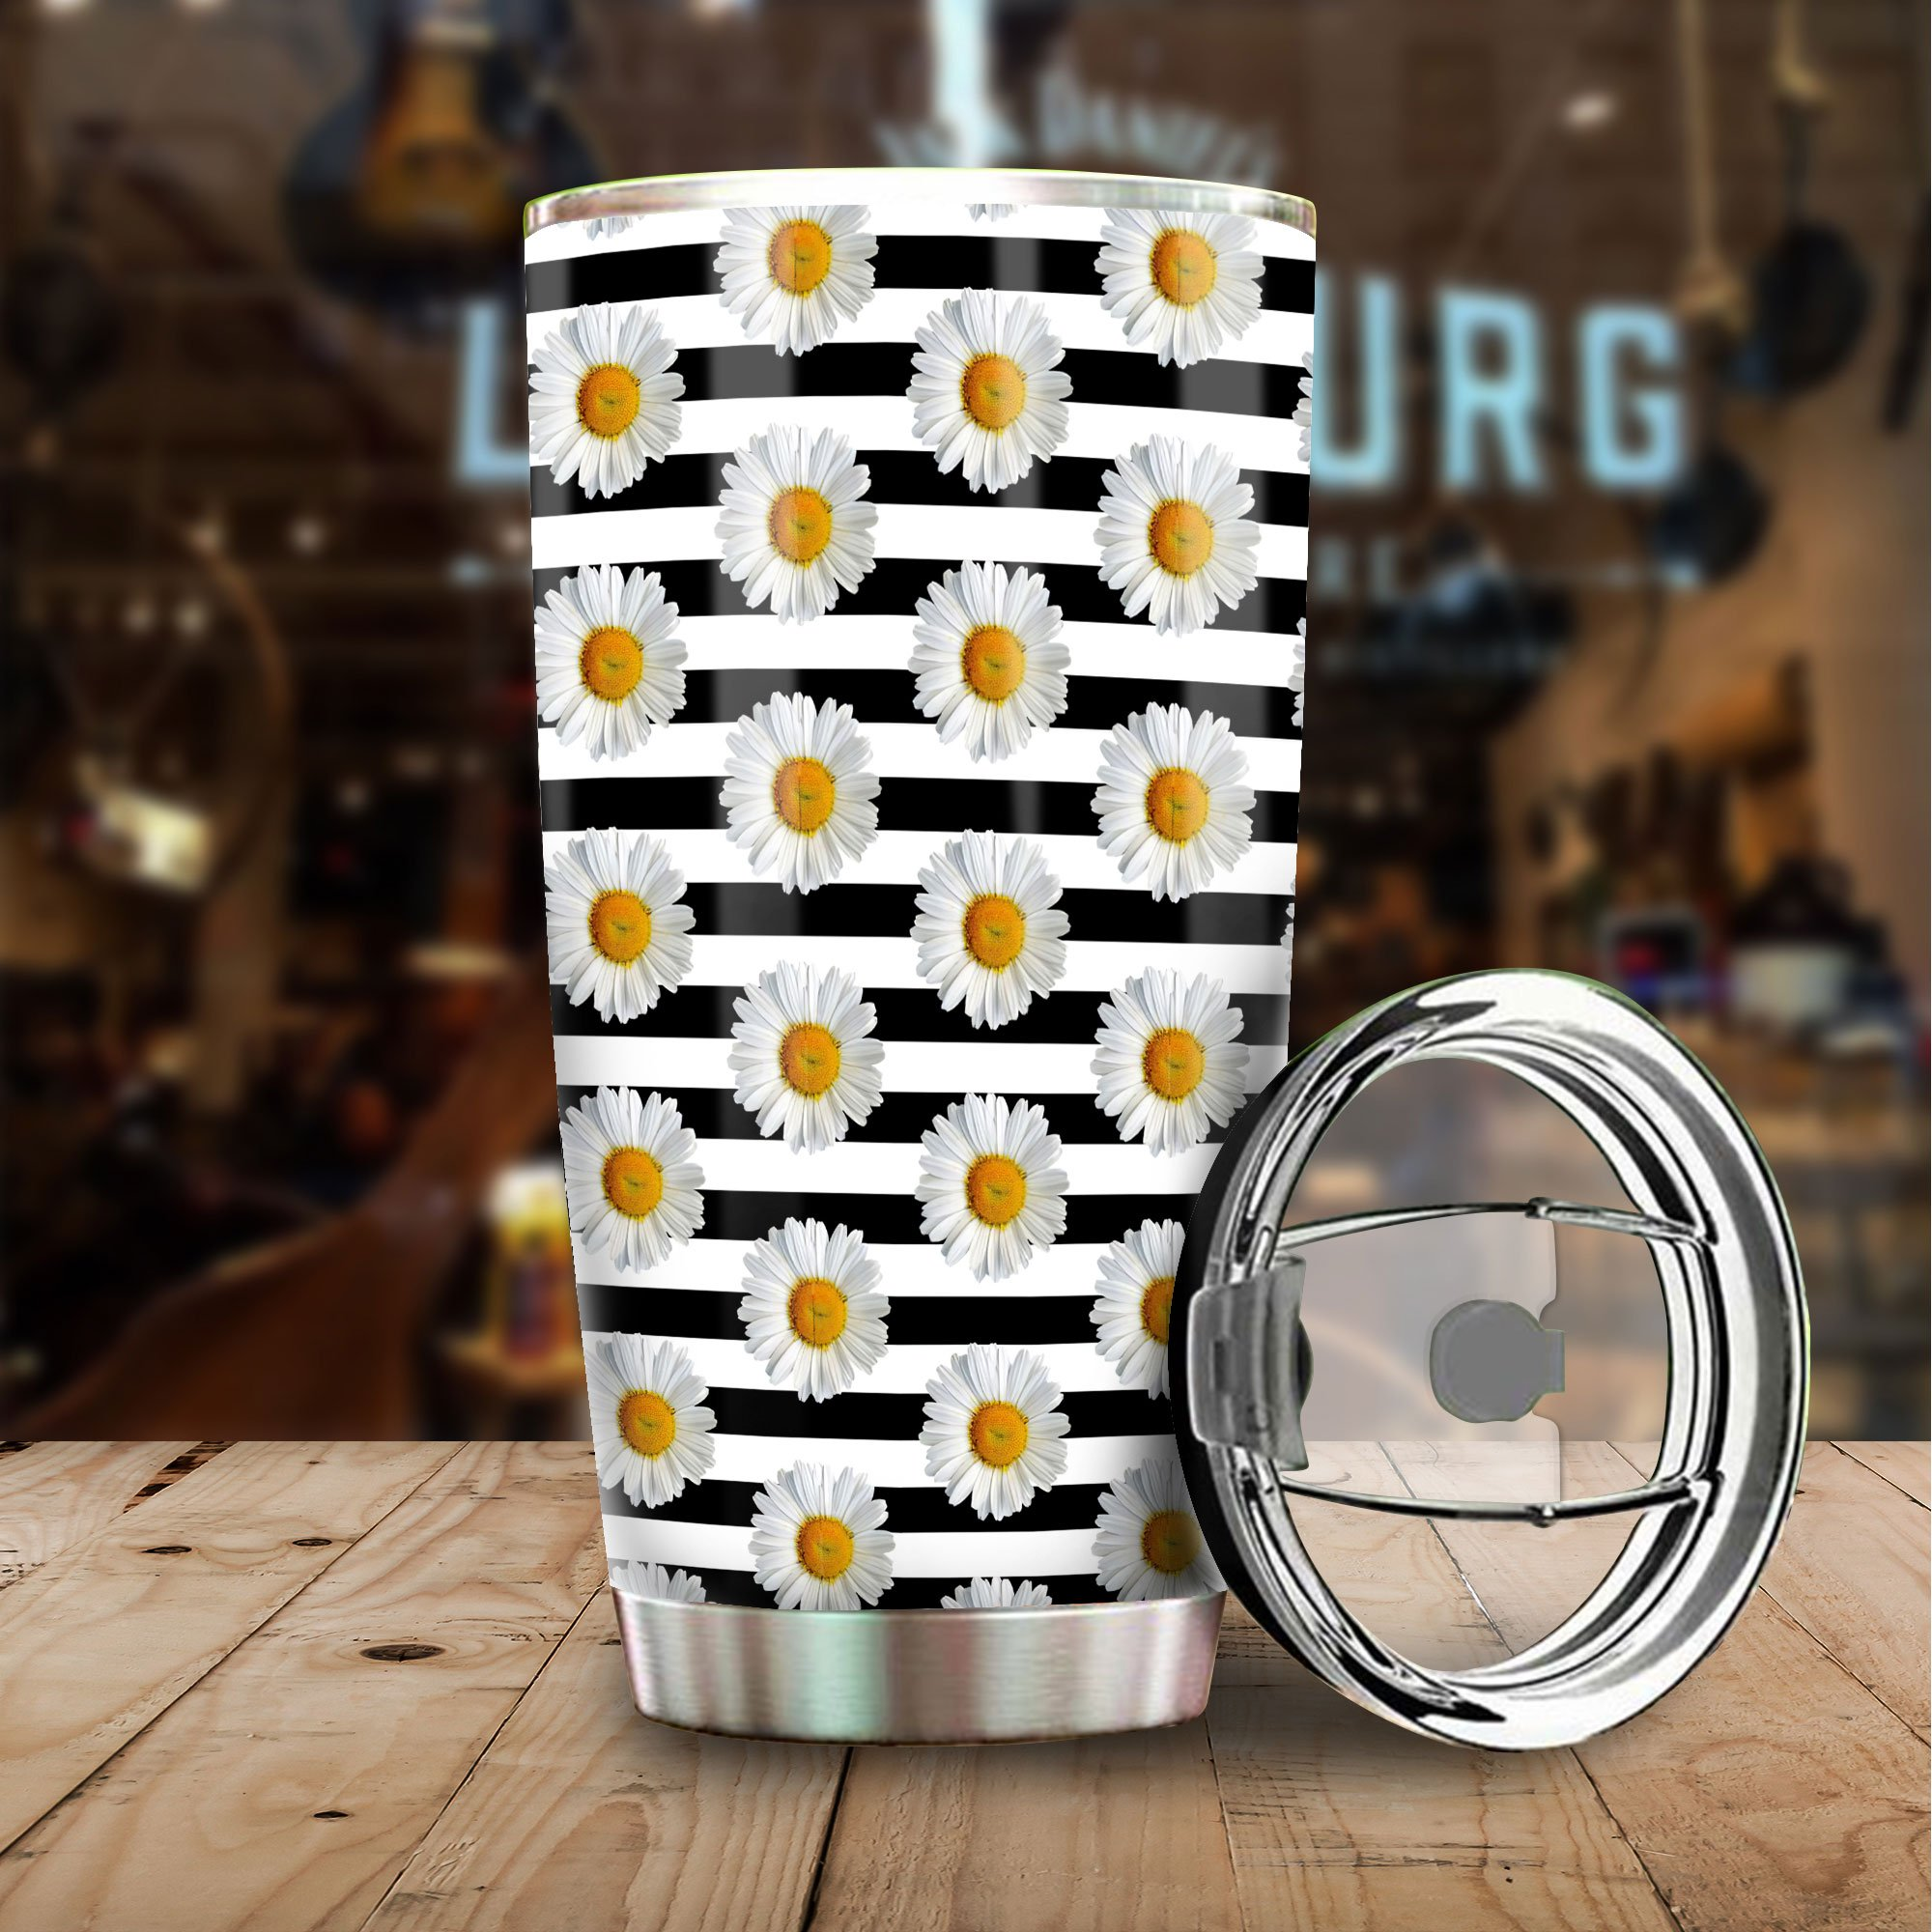 89fashion Sunflower Line Tumbler Stainless Steel Custom Black And White Pattern Size 20 Oz Coffee Tumbler